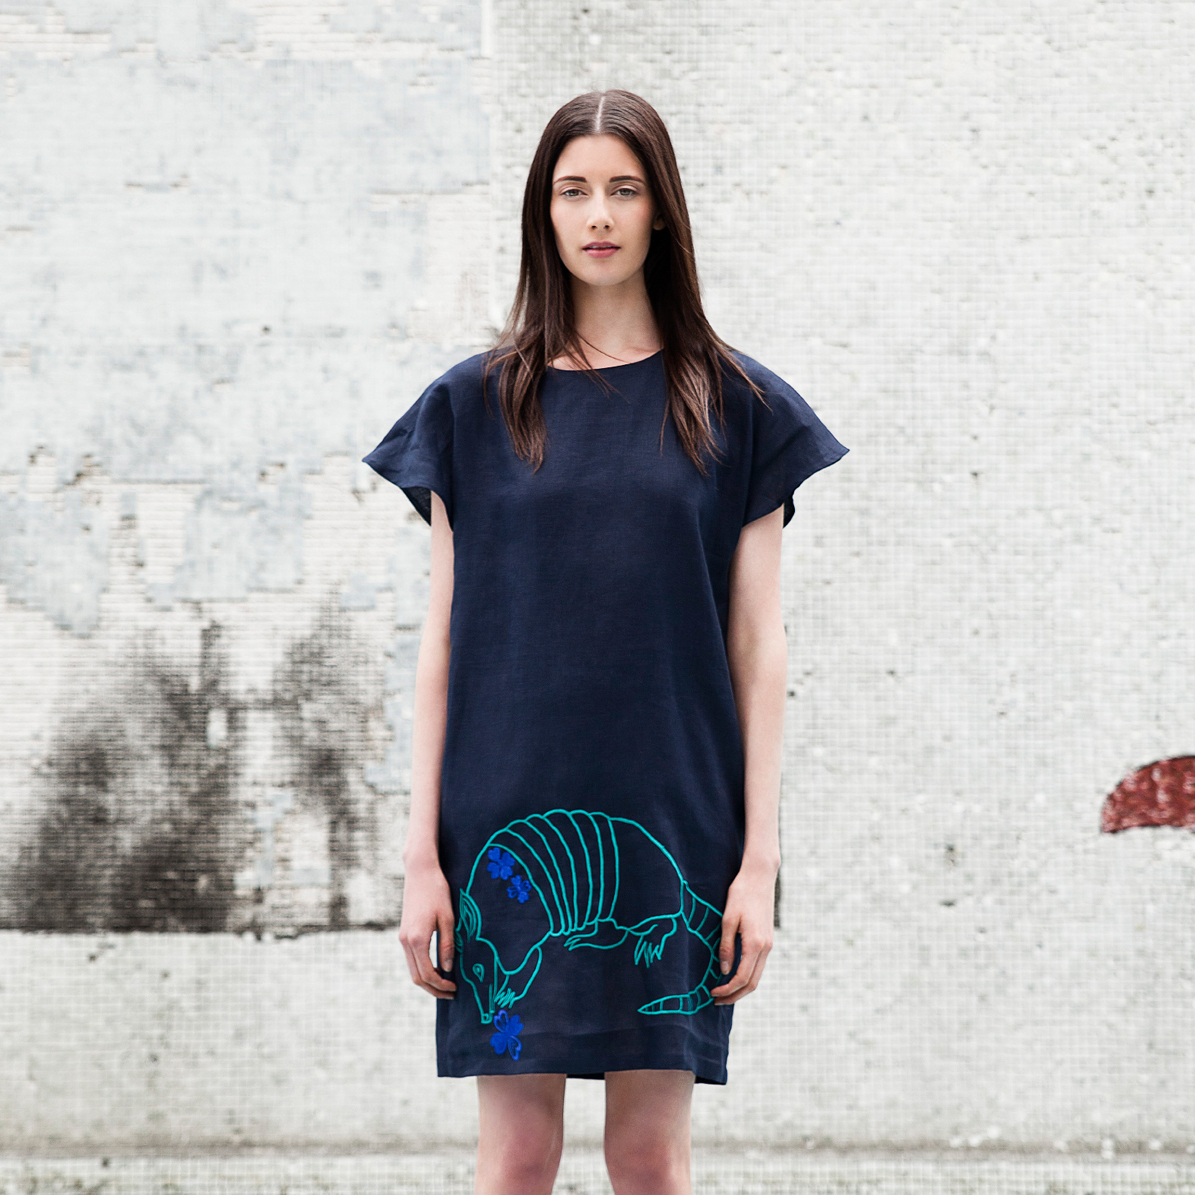 Mayan artisans hand-embroidered an armadillo onto this linen dress from Carla Fernández's Mayalands collection. The shape of Fernández's dress is inspired by the traditional huipil,although the rest of the design is unrelated.